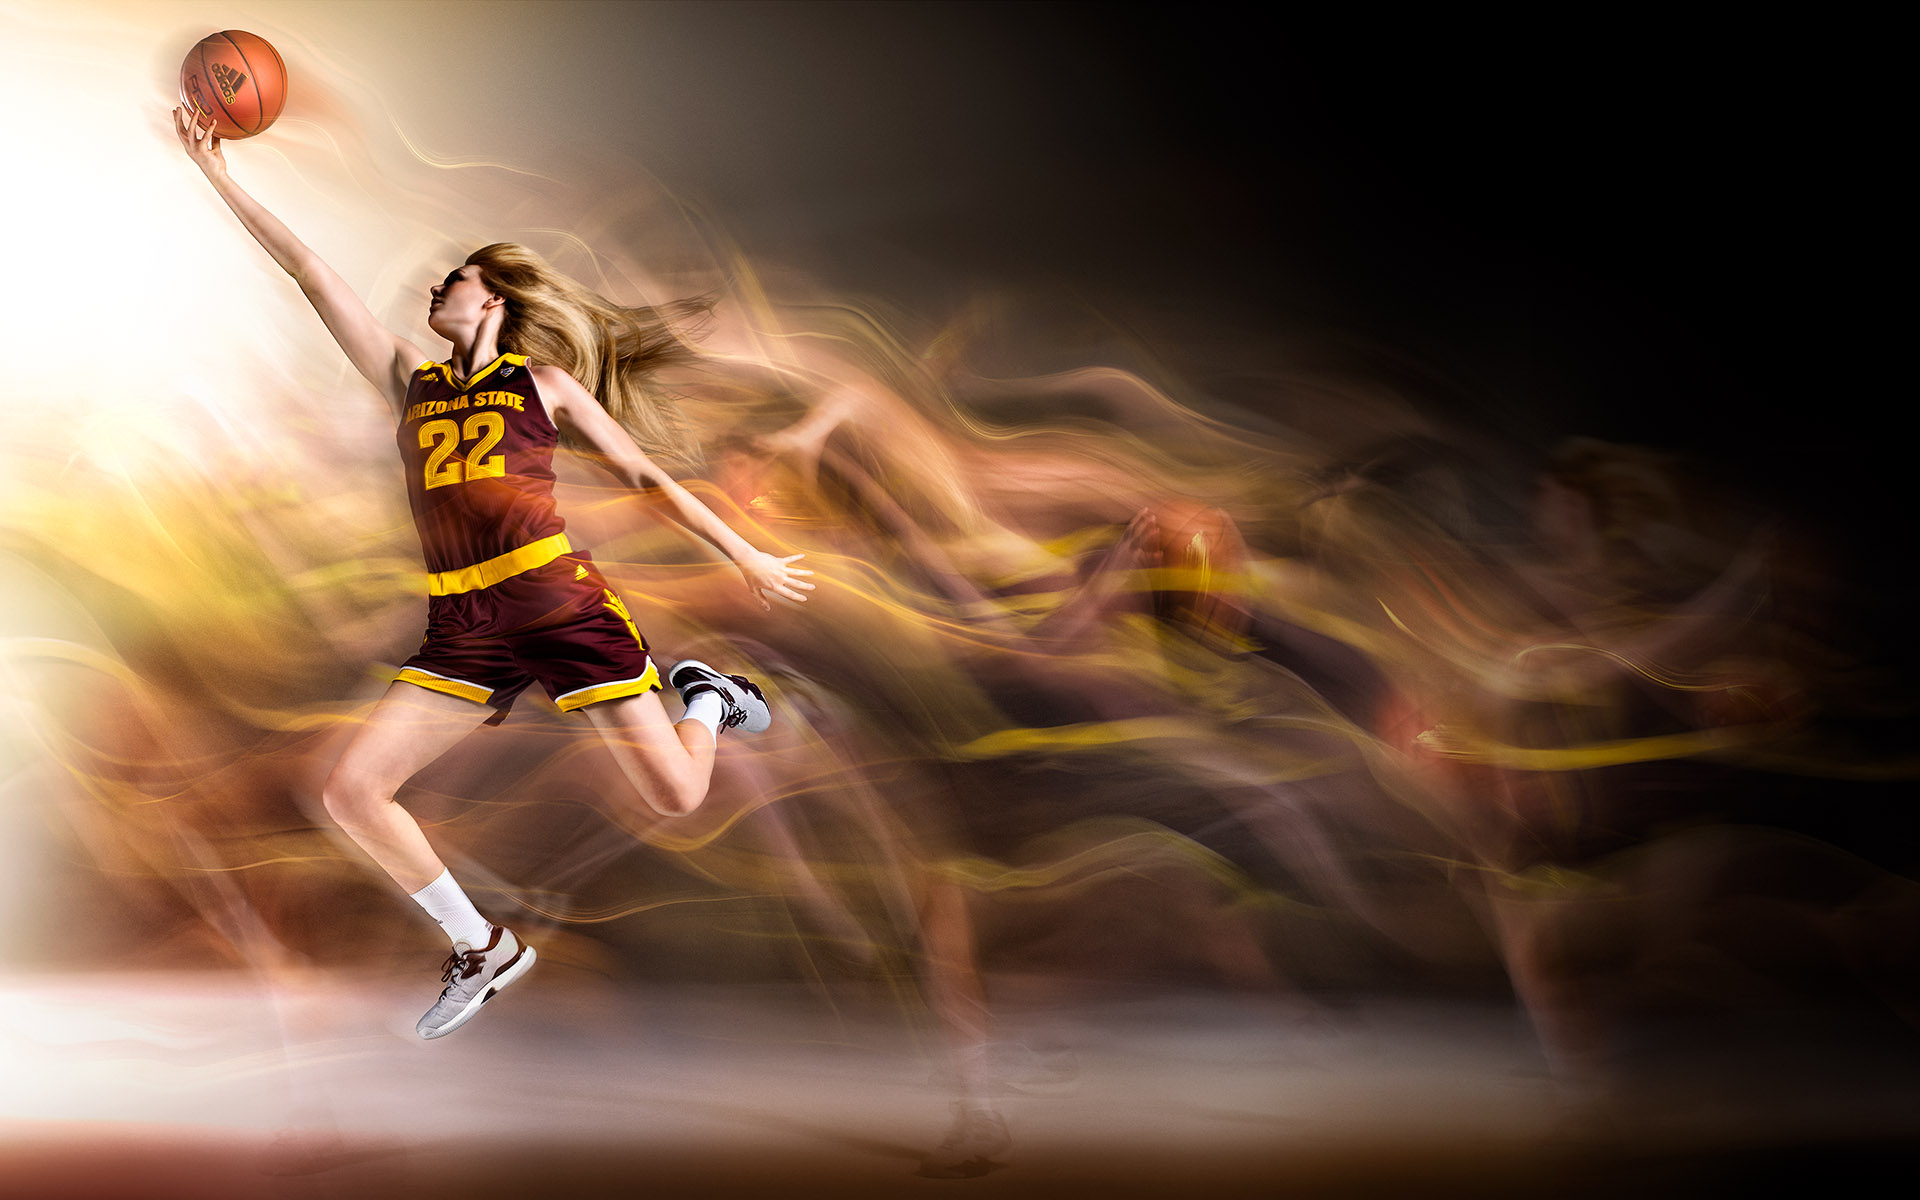 ASU 2016 Basketball ©Blair Bunting